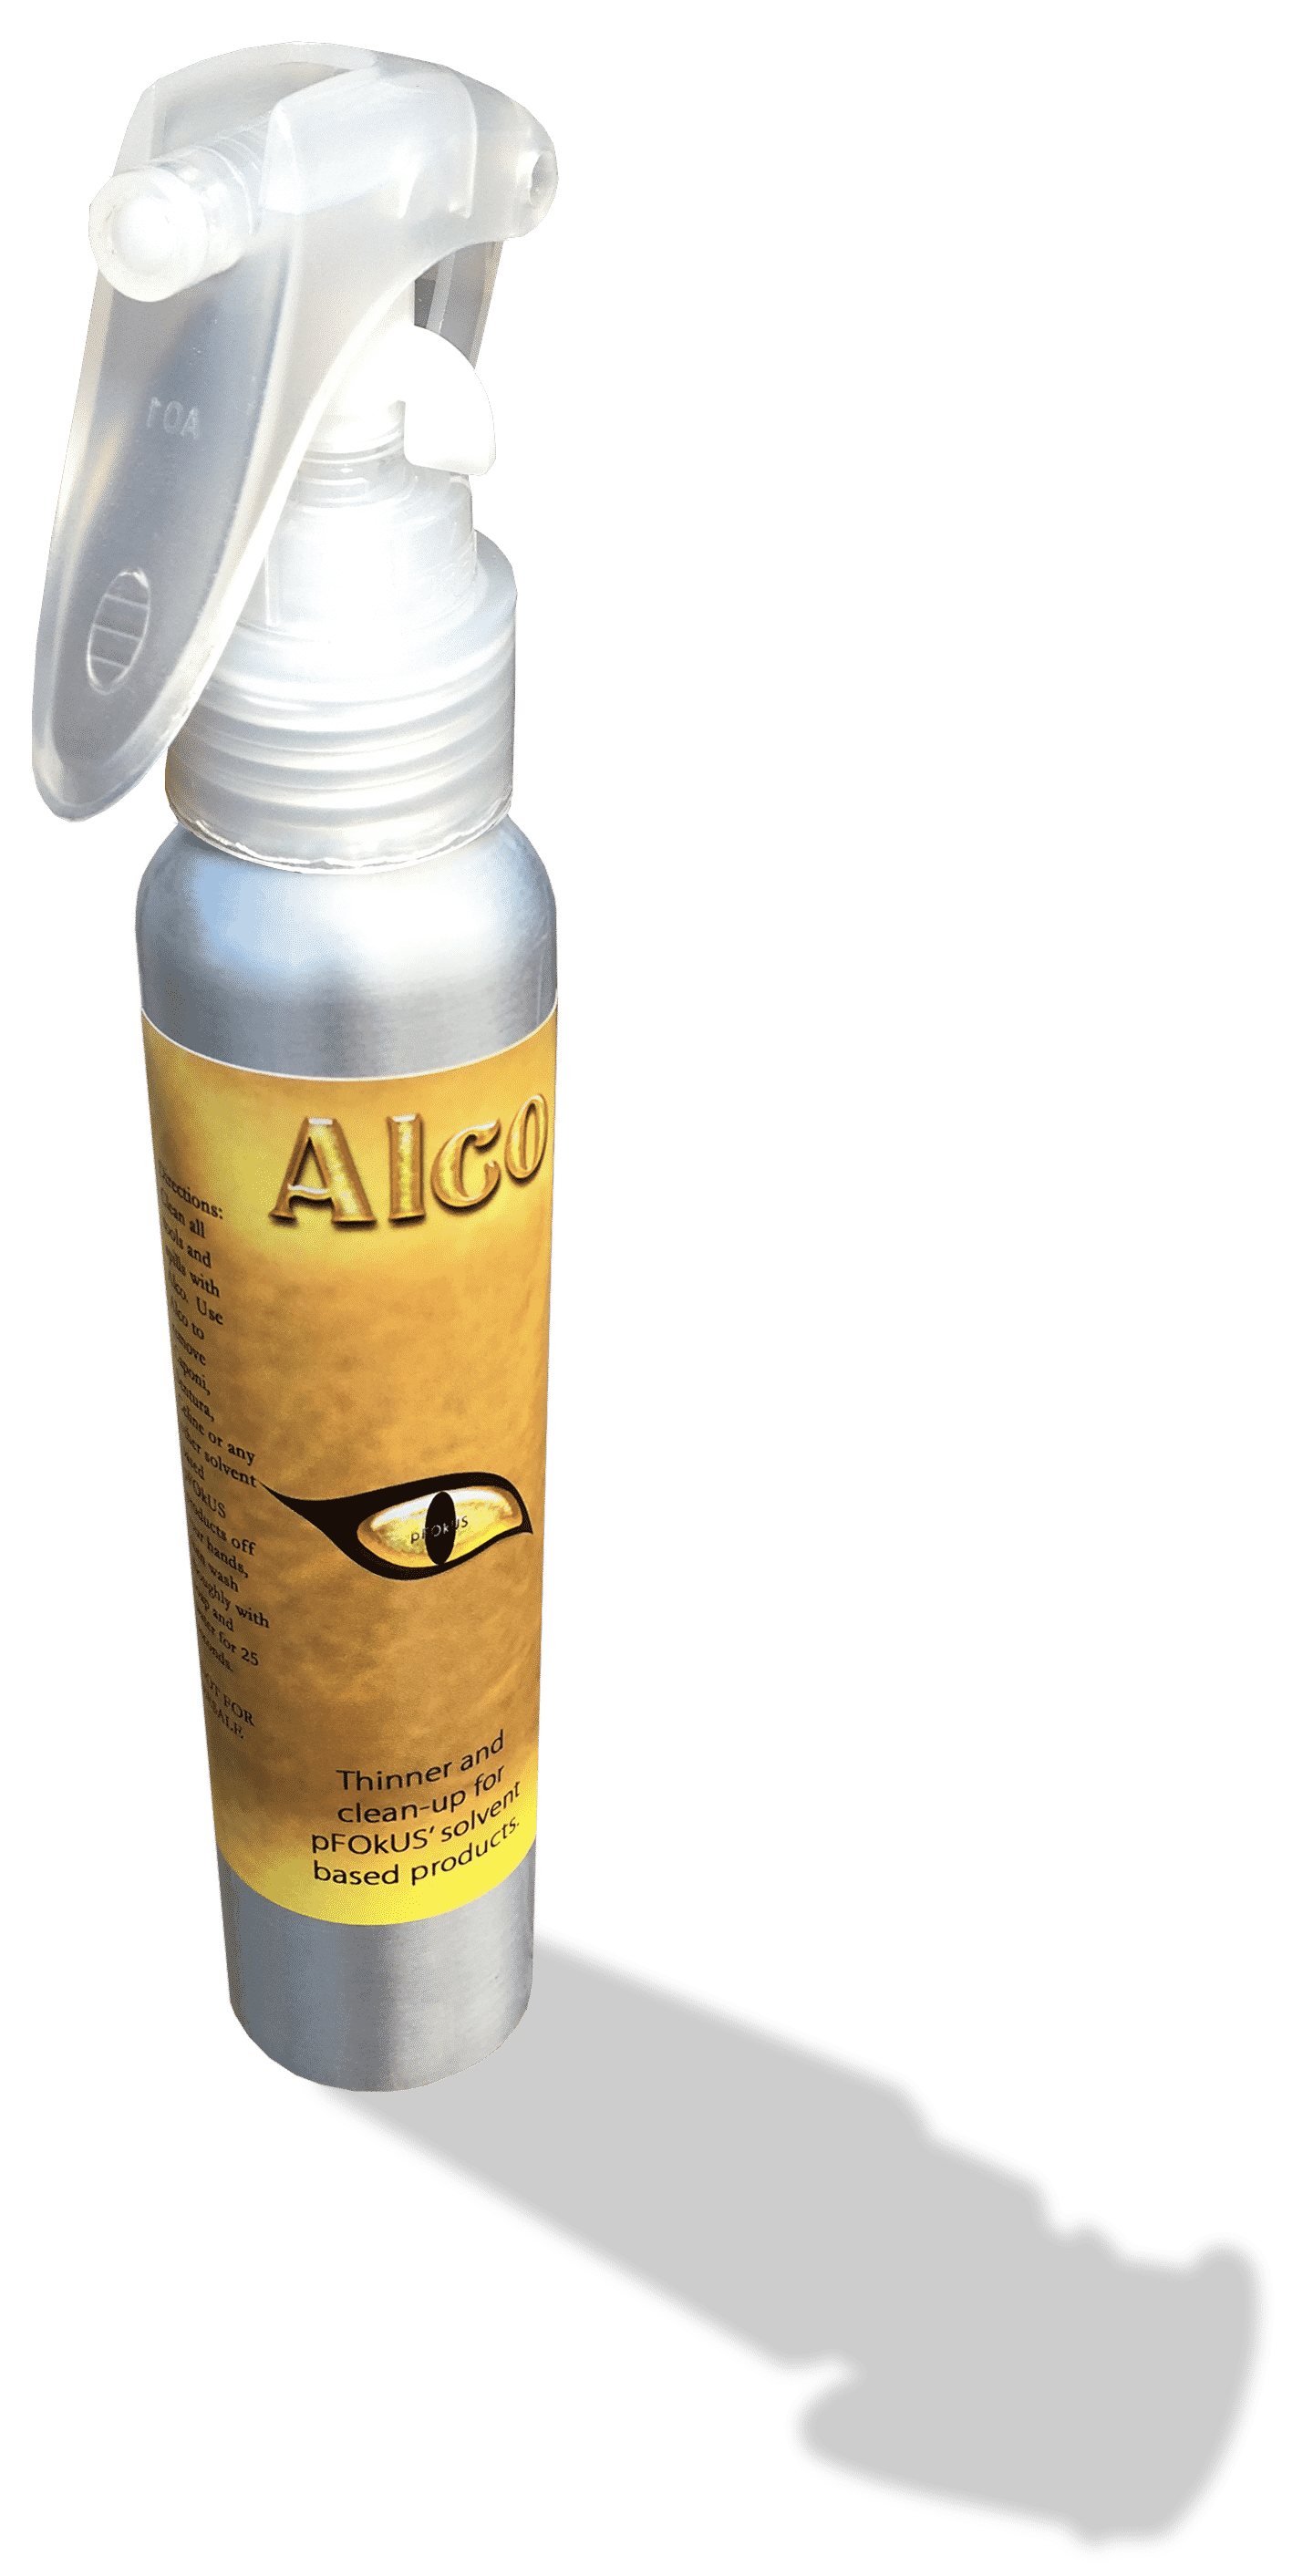 Tile Floor Cleaning Products - Alco